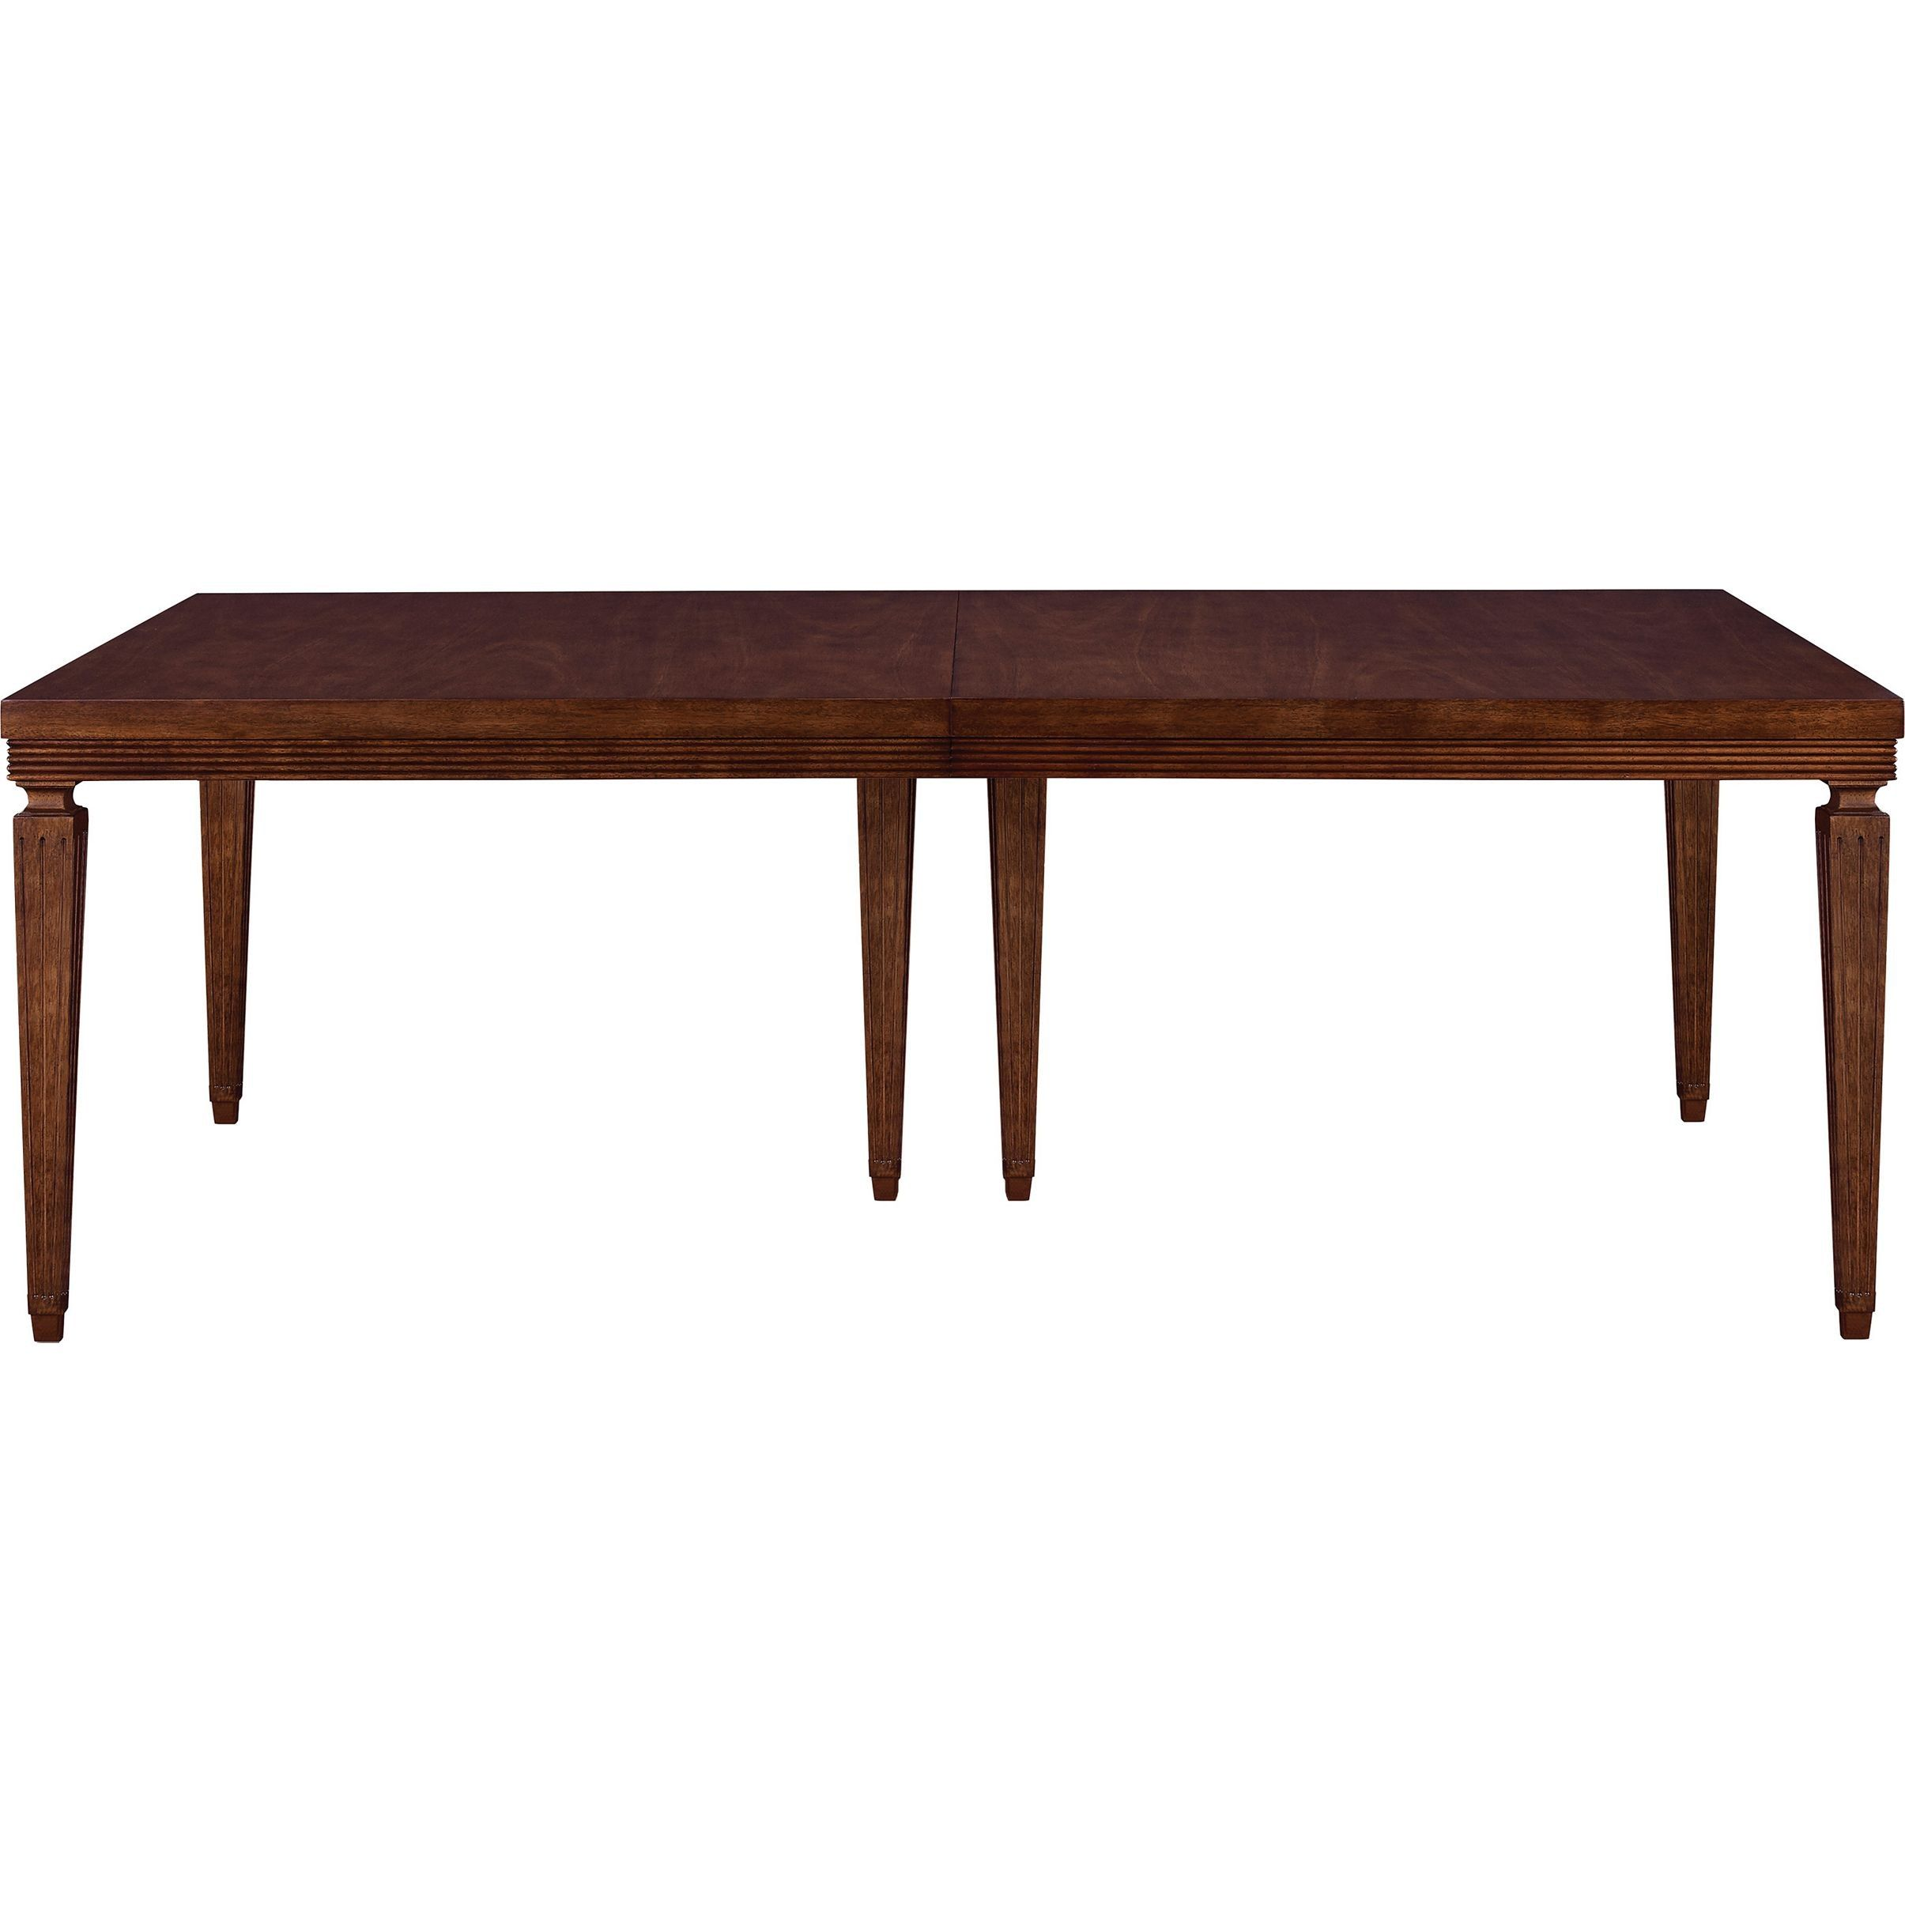 Chateau Reeded Apron Dining Table (With images) Hickory